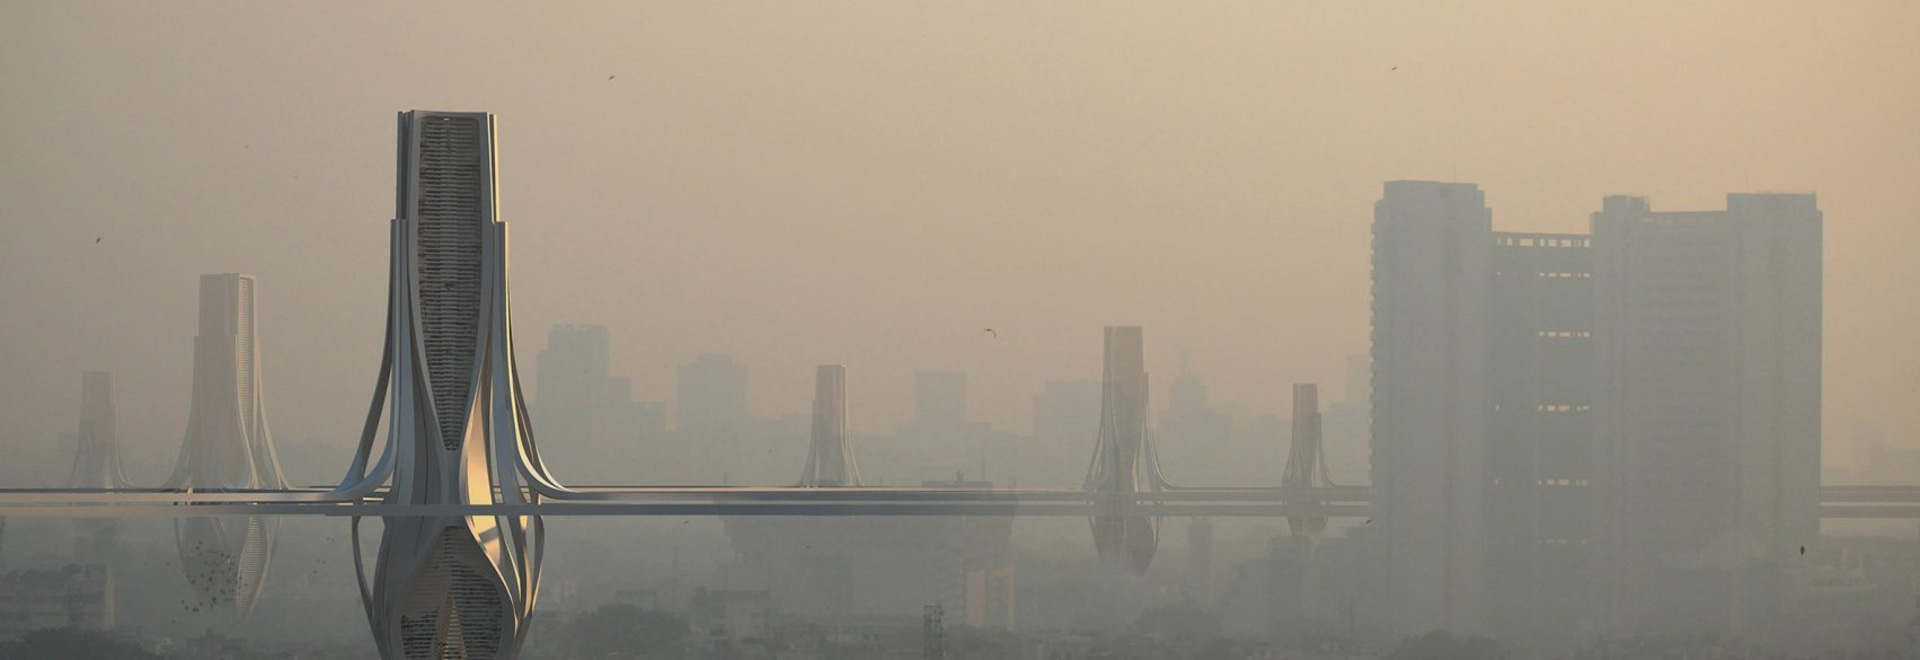 Vast grid of filter towers proposed across Delhi to combat toxic smog